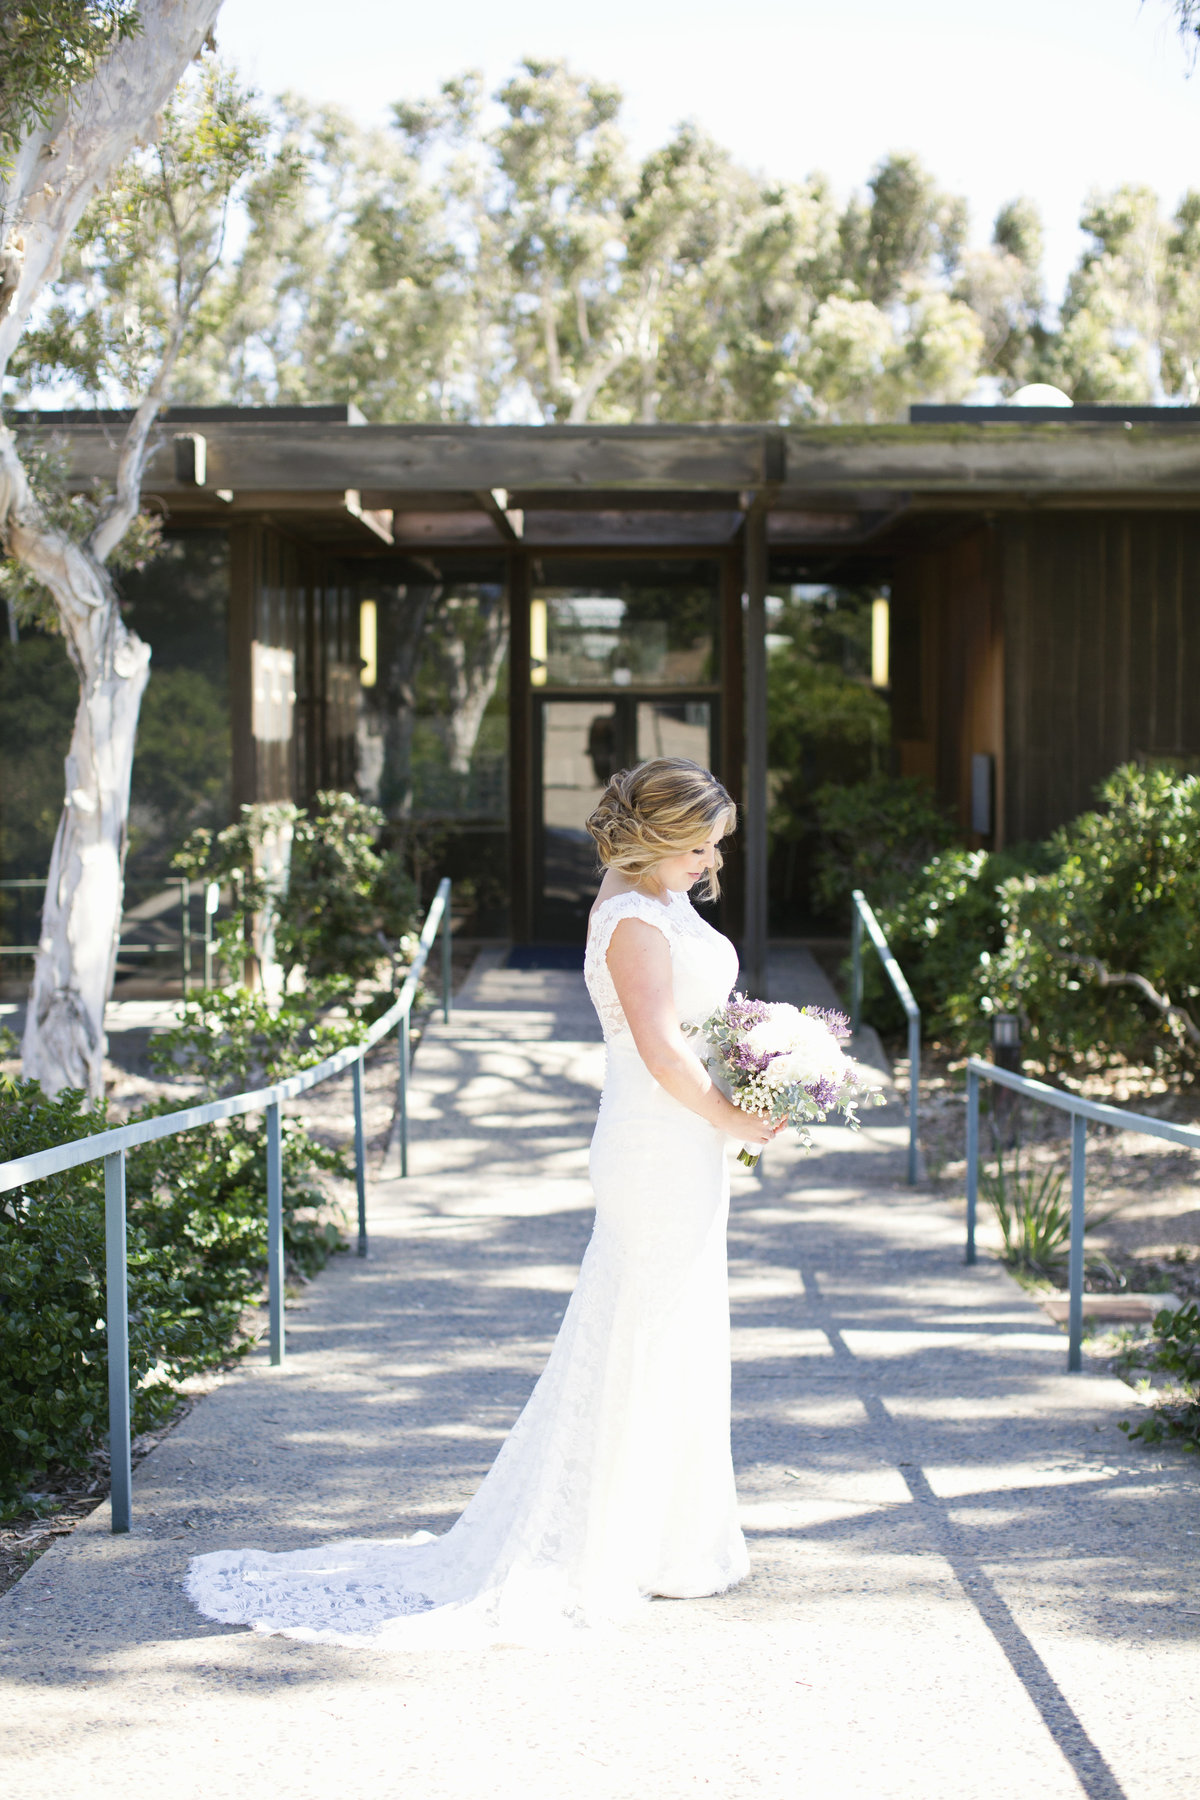 Katherine_beth_photography_San_diego_wedding_photographer_san_diego_wedding_martin_johnson_house_wedding_001